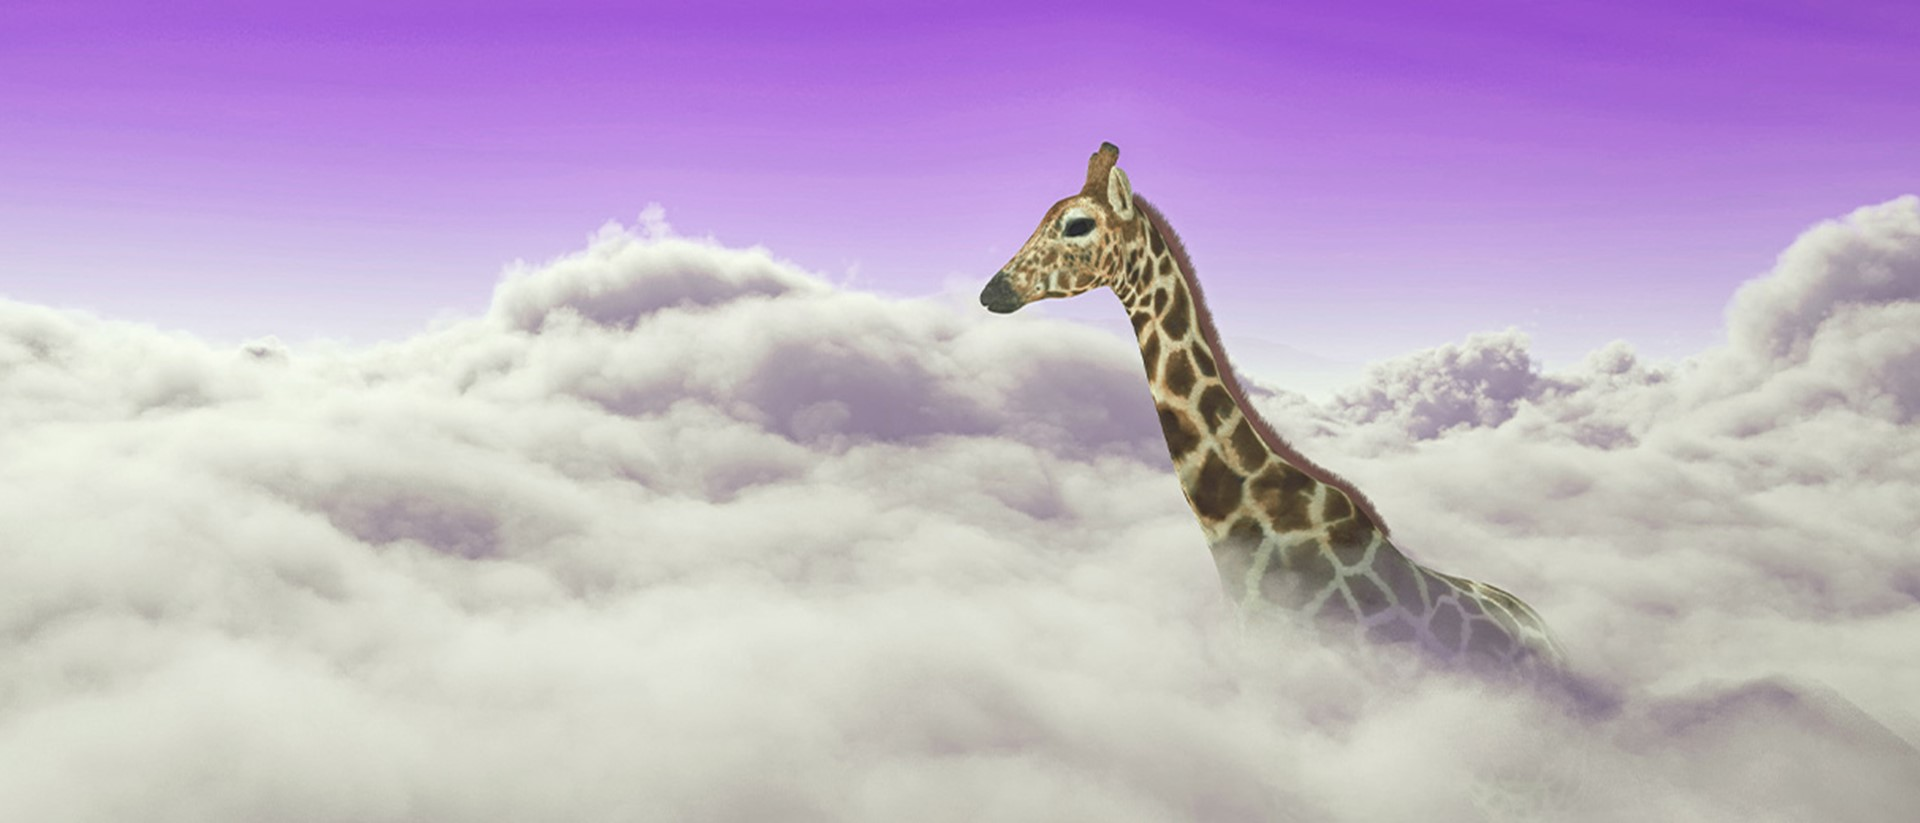 Image of a giraffe poking up through clouds with a purple sky